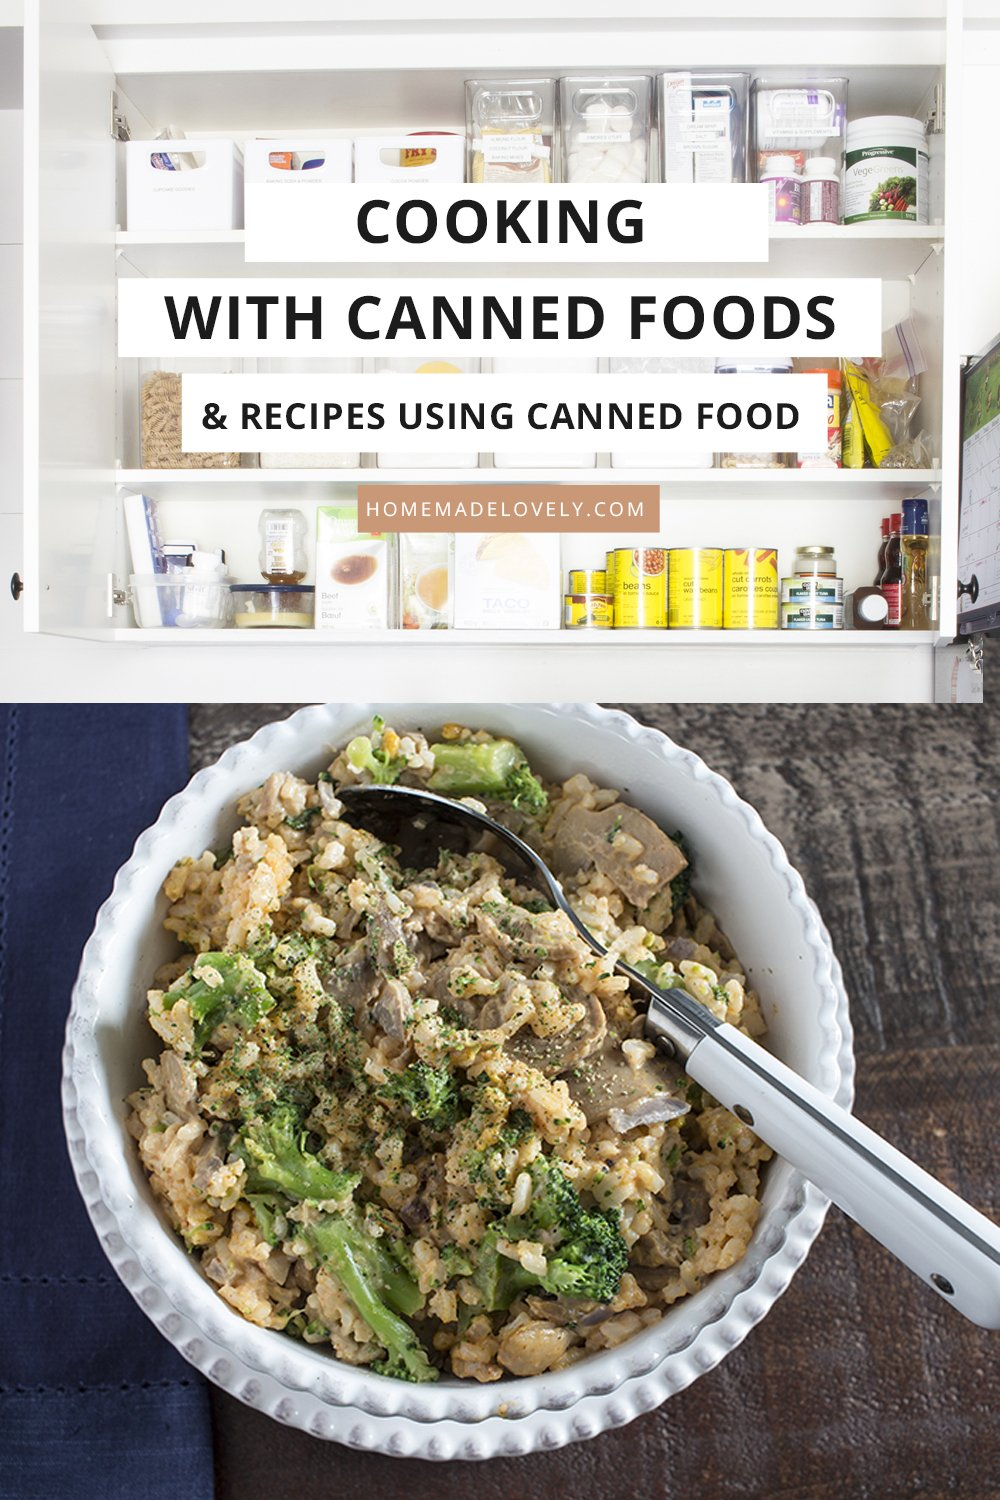 pantry with cans and bowl of casserole with text overlay about cooking with canned foods